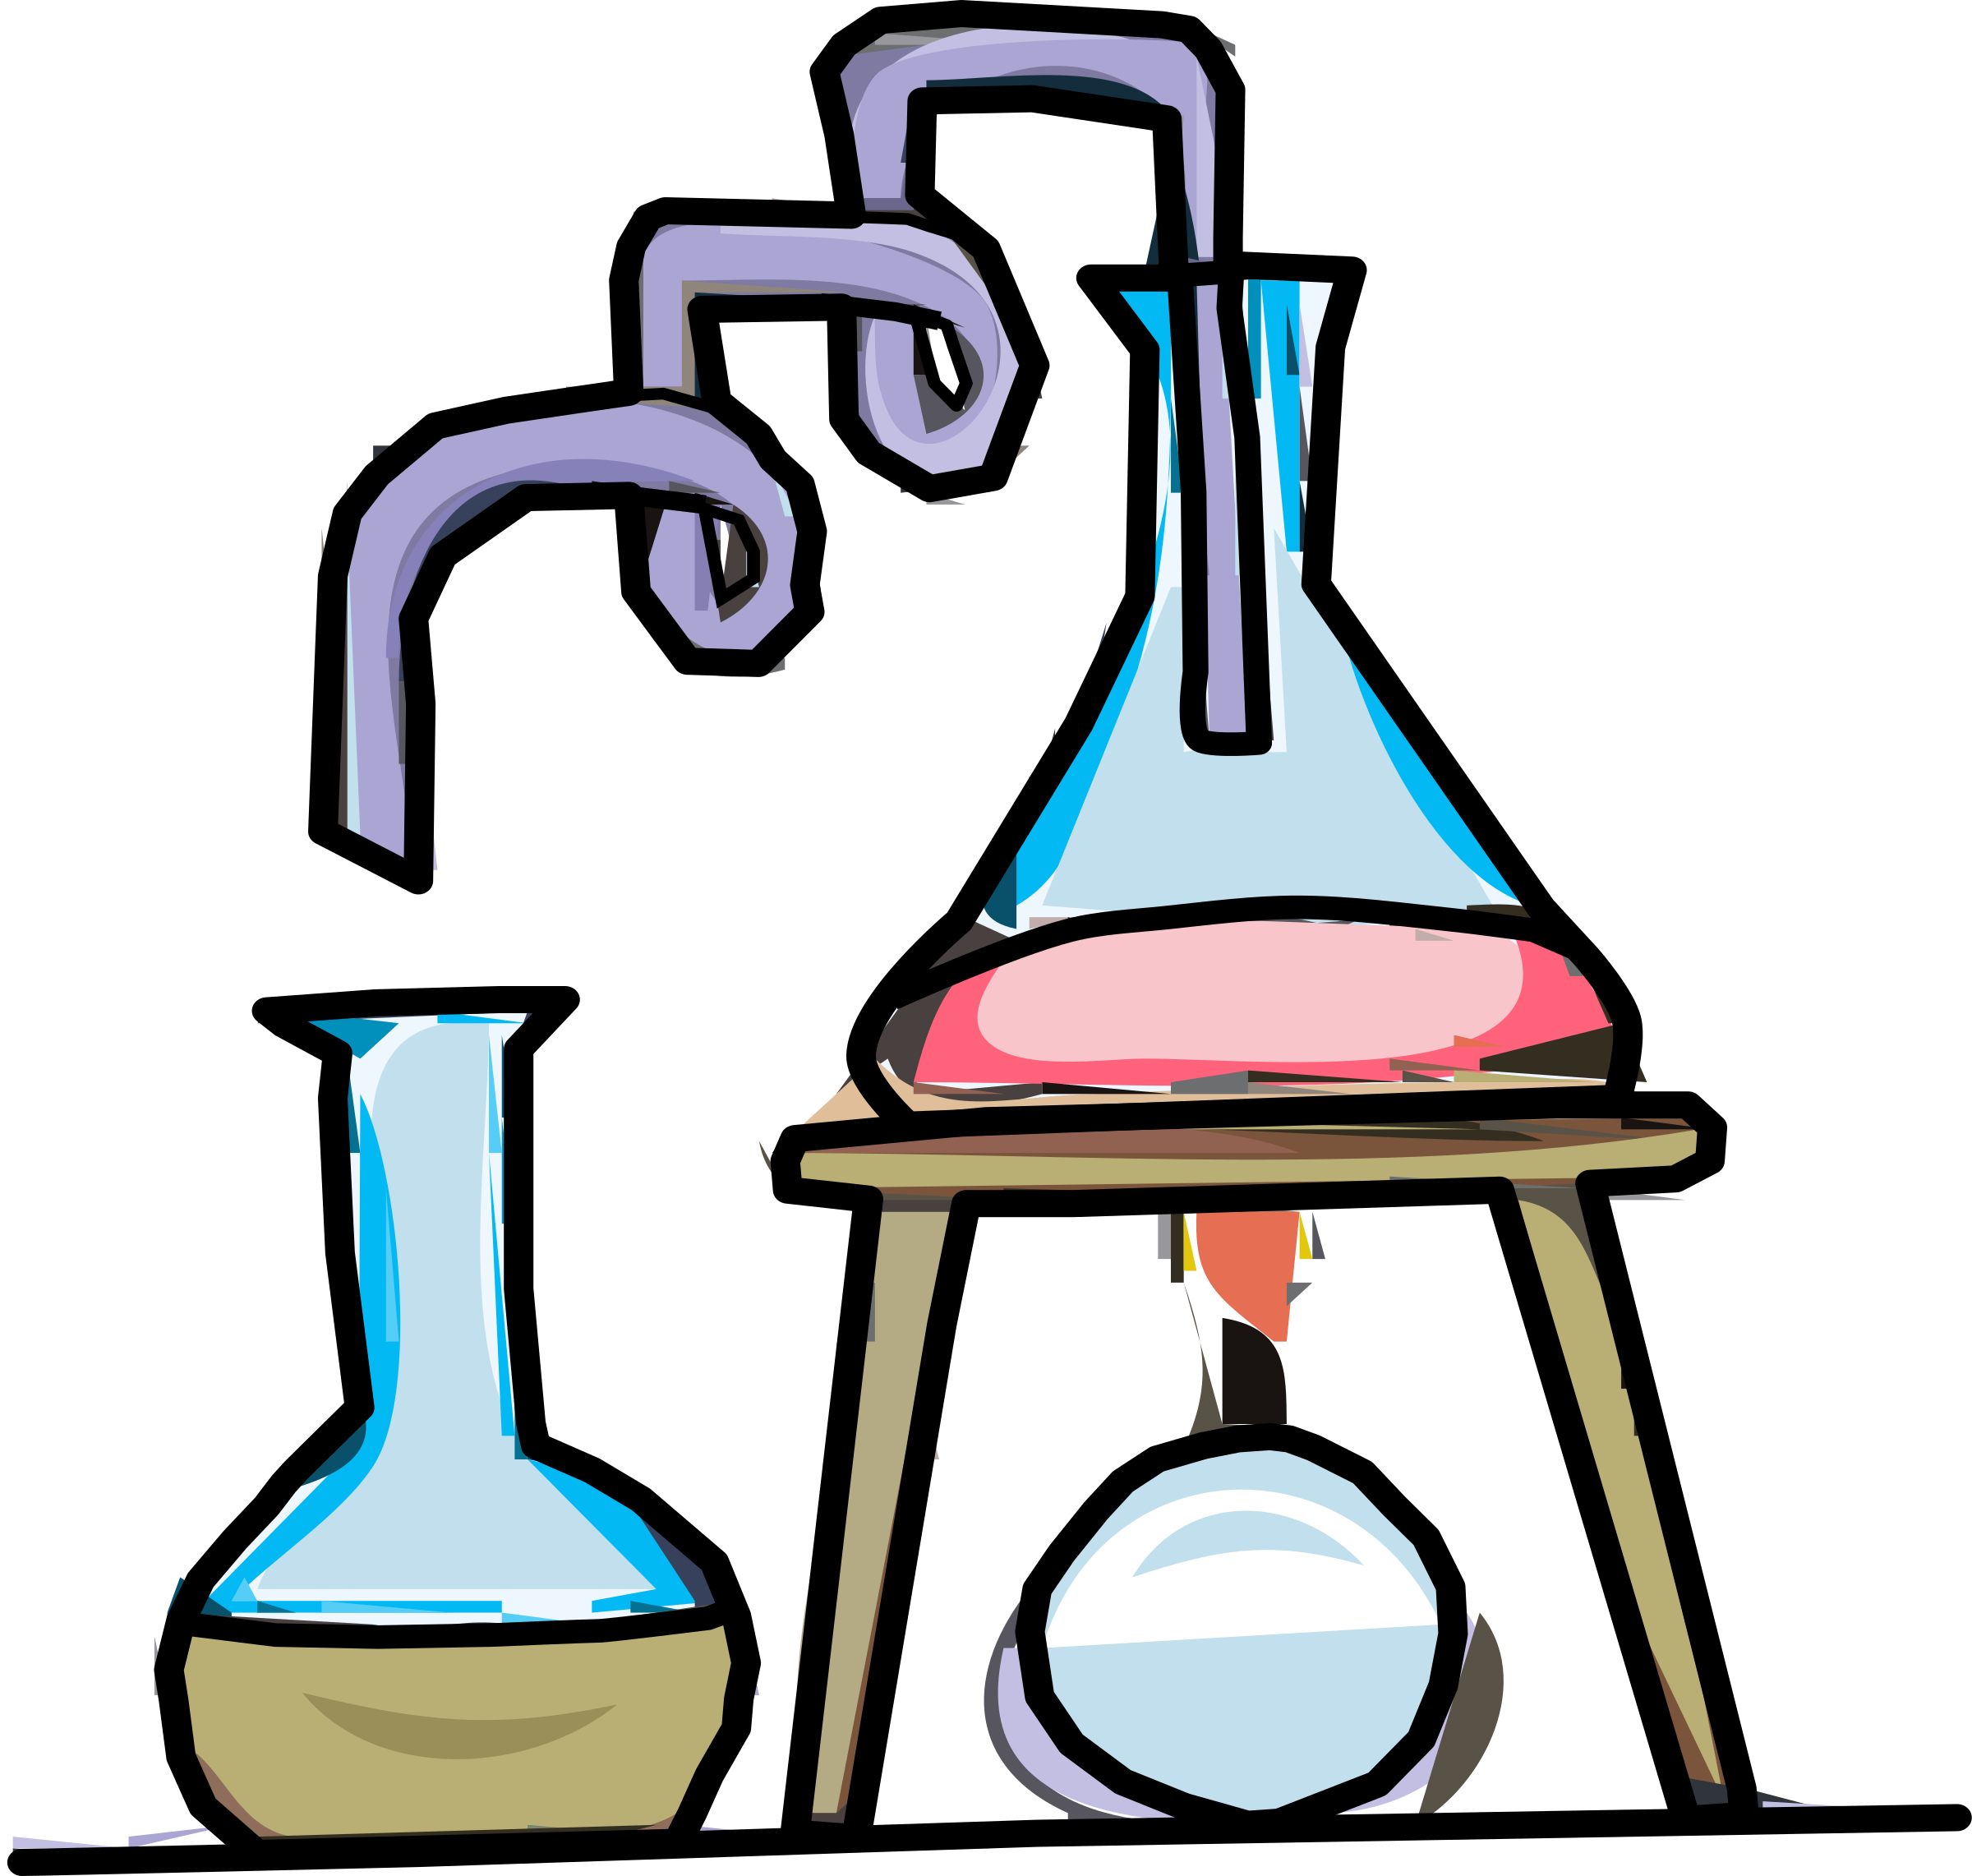 Science Clipart Png Free Science Clipart Png Transparent Images 69306 Pngio